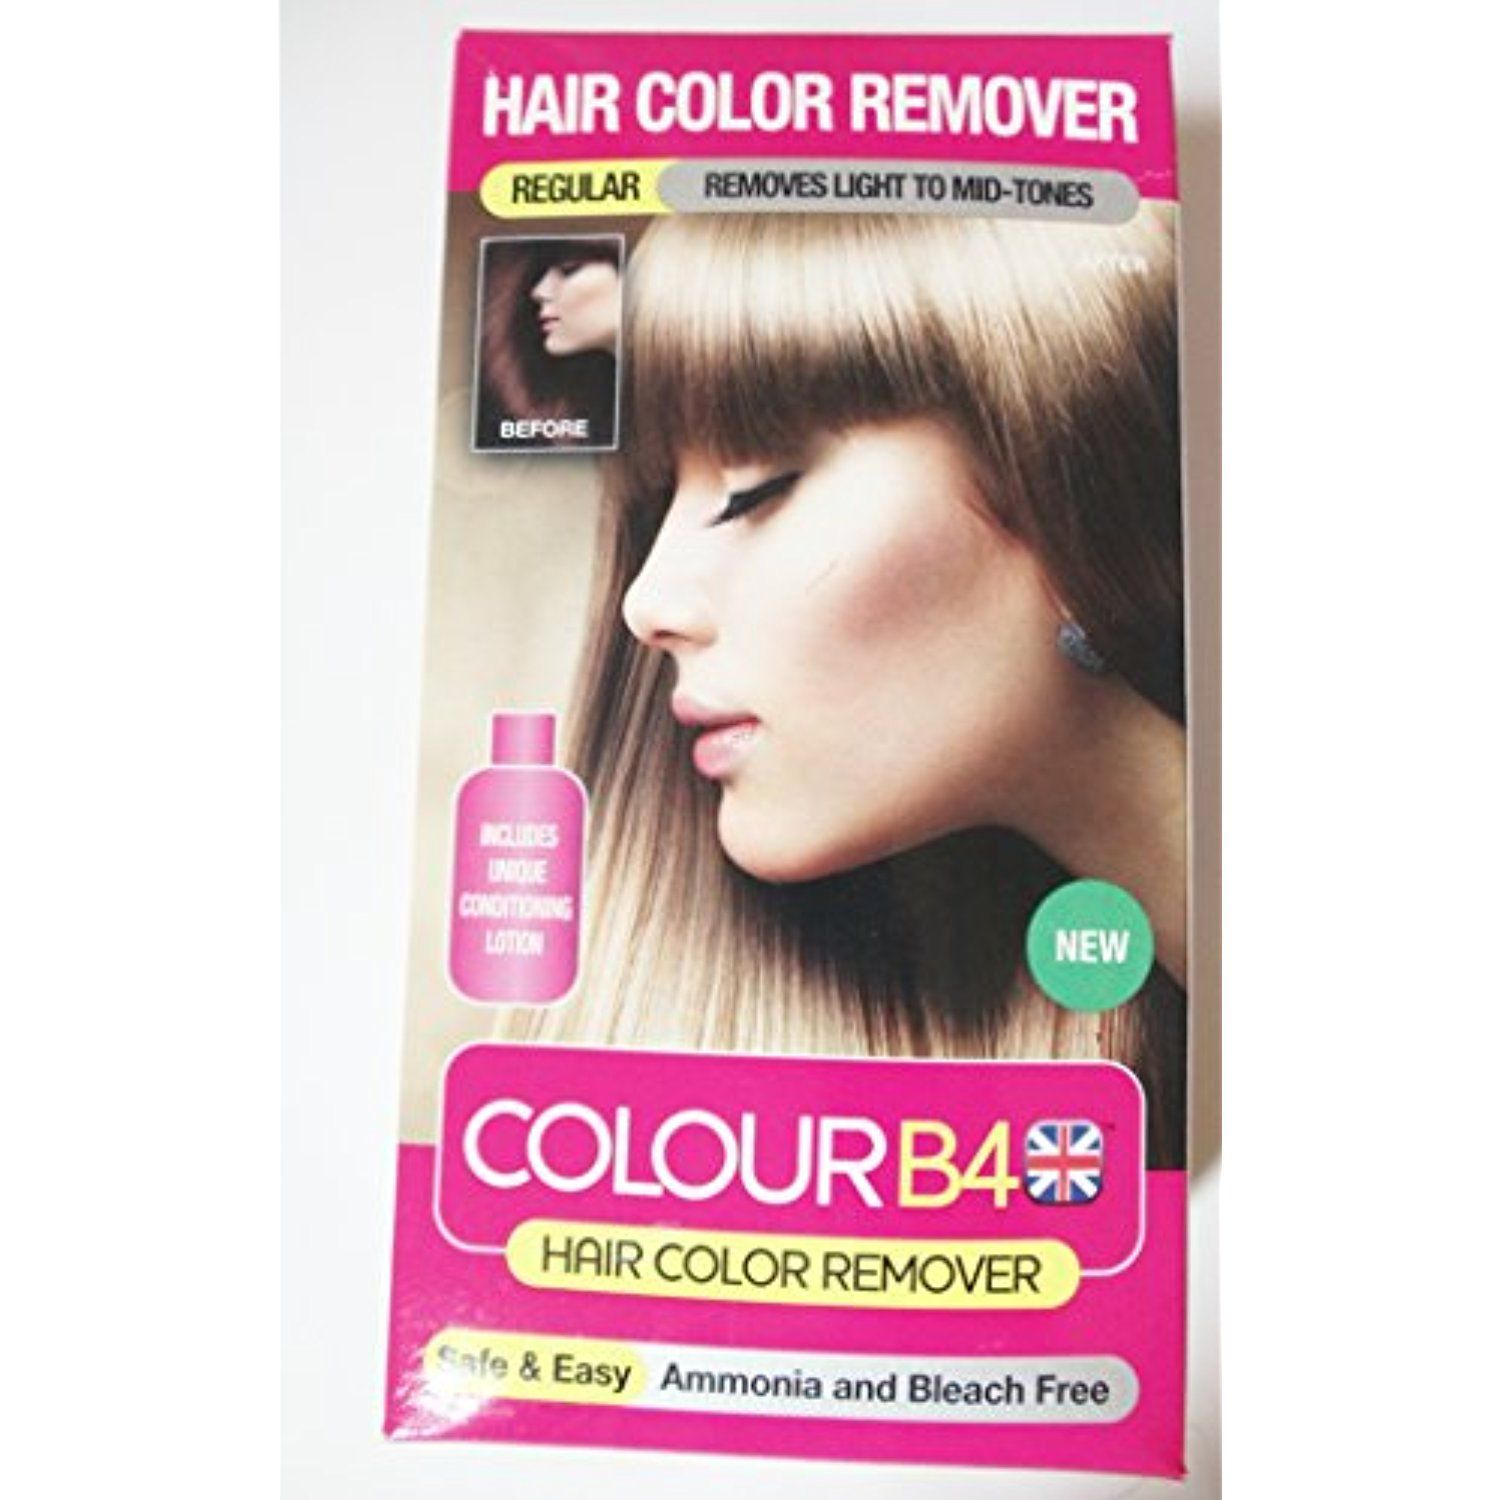 Colour B4 Hair Color Remover Regular 93 Ounce Be Sure To Check